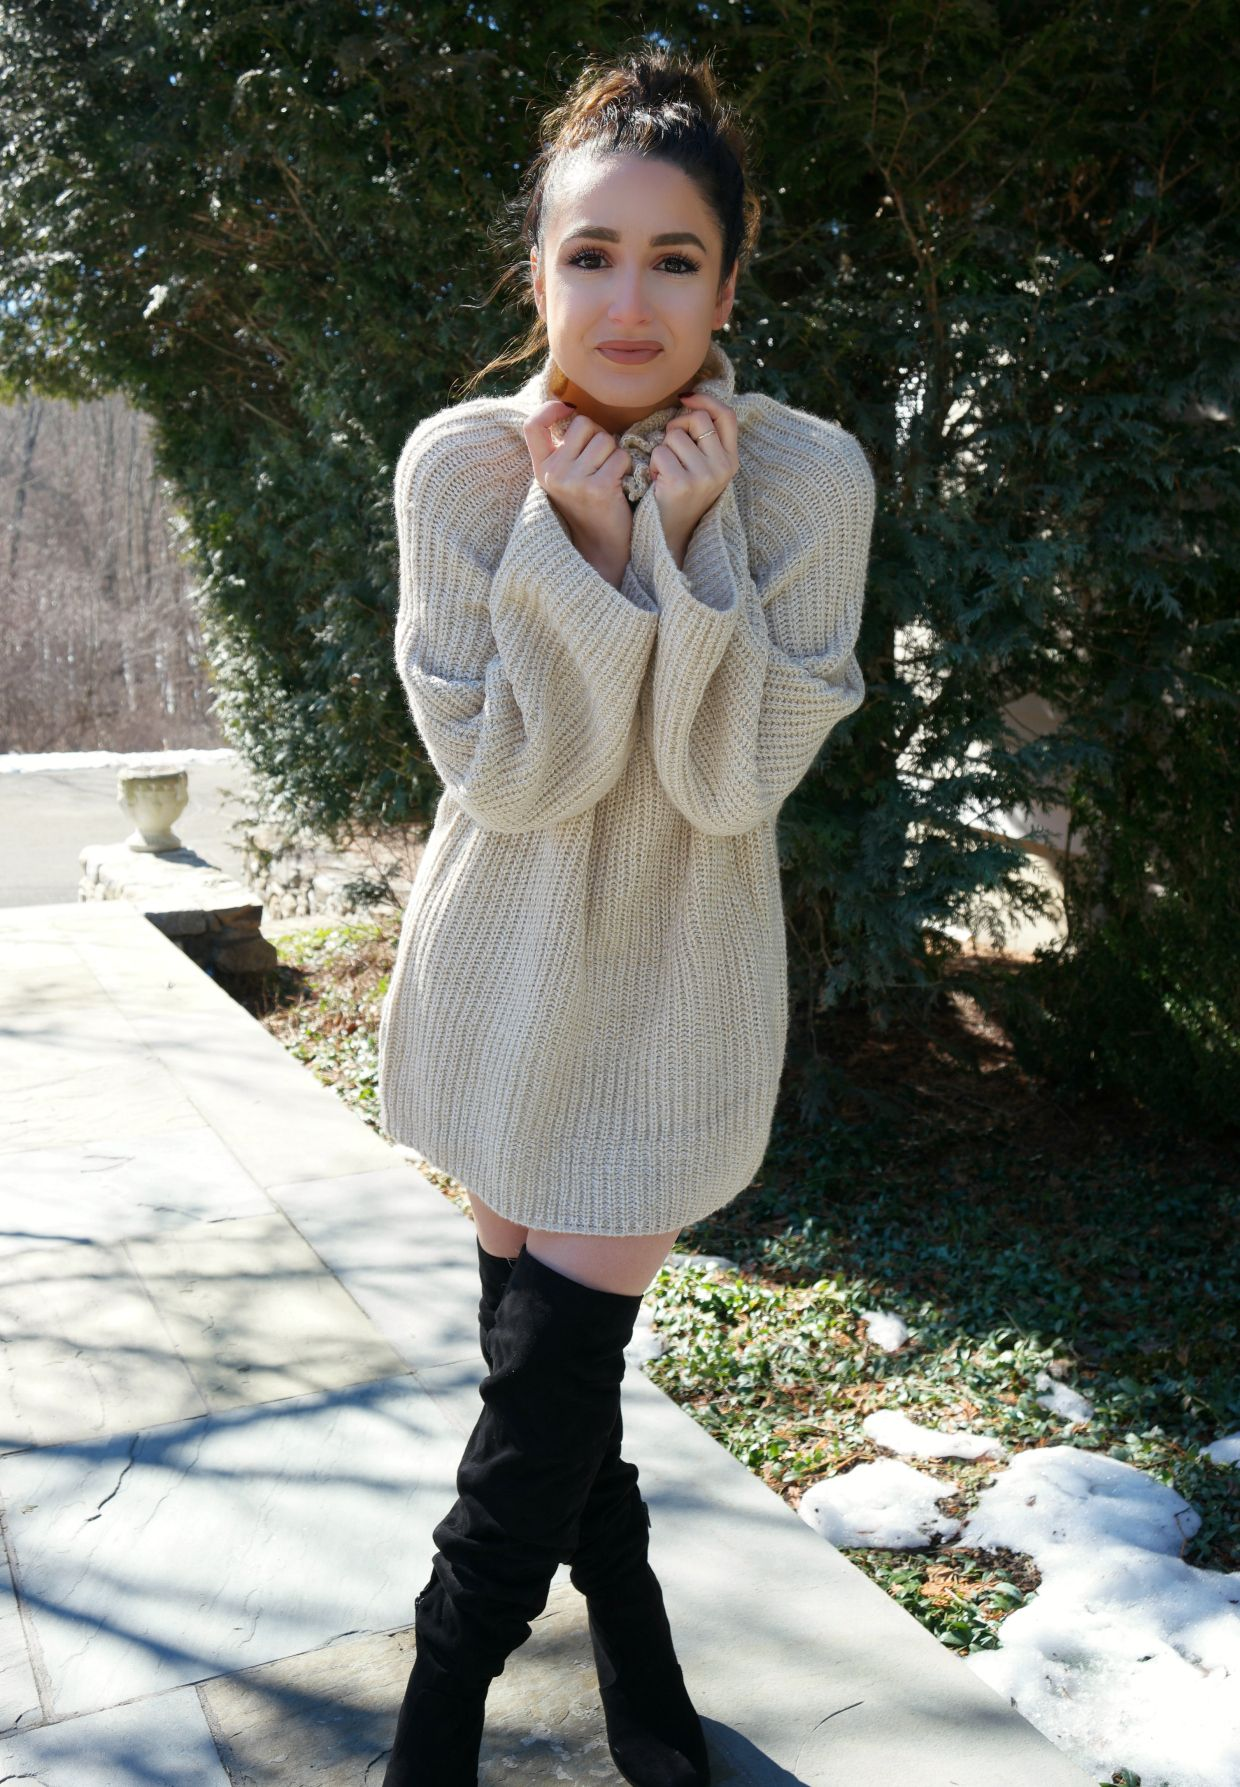 Trying the Trend Oversized Sweater Dress